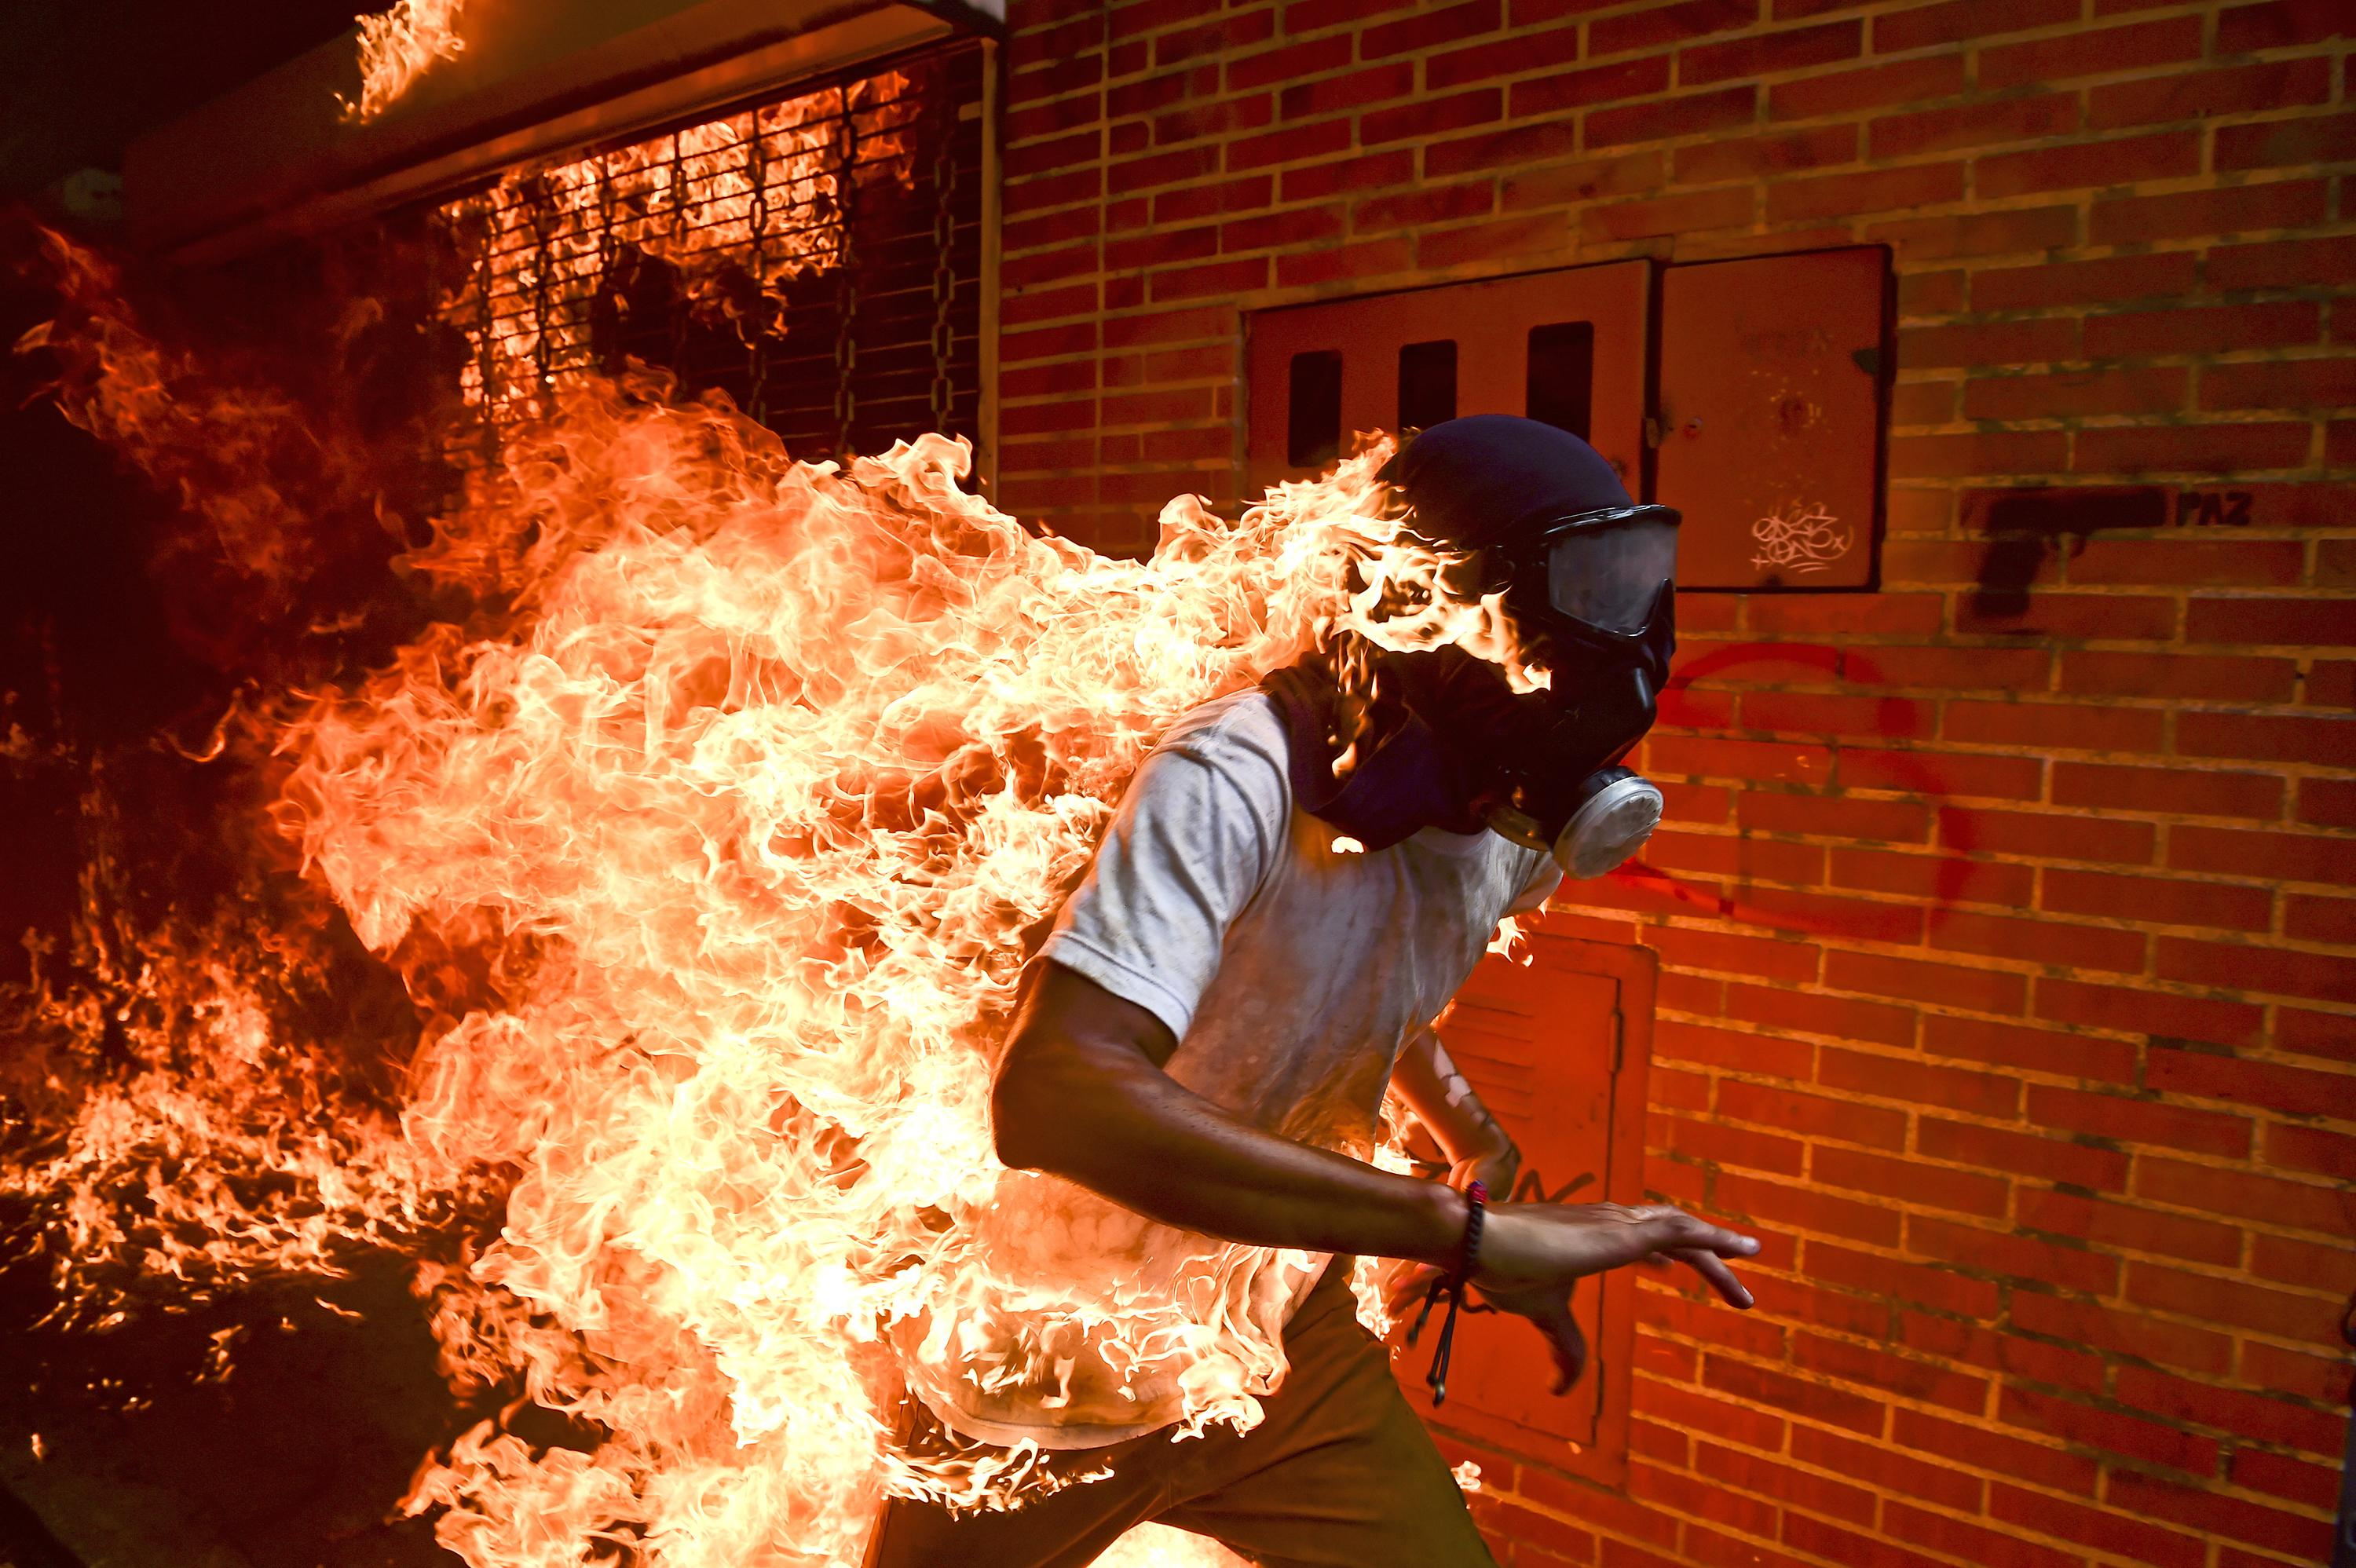 <p>Venezuela crisis: José Víctor Salazar Balza (28) catches fire amid violent clashes with riot police during a protest against President Nicolás Maduro, in Caracas, Venezuela, May 3, 2017.<br>President Maduro had announced plans to revise Venezuela'€™s democratic system by forming a constituent assembly to replace the opposition-led National Assembly, in effect consolidating legislative powers for himself. Opposition leaders called for mass protests to demand early presidential elections. Clashes between protesters and the Venezuelan national guard broke out on 3 May, with protesters (many of whom wore hoods, masks or gas masks) lighting fires and hurling stones. Salazar was set alight when the gas tank of a motorbike exploded. He survived the incident with first- and second-degree burns. (Photo: Ronaldo Schemidt/AFP) </p>